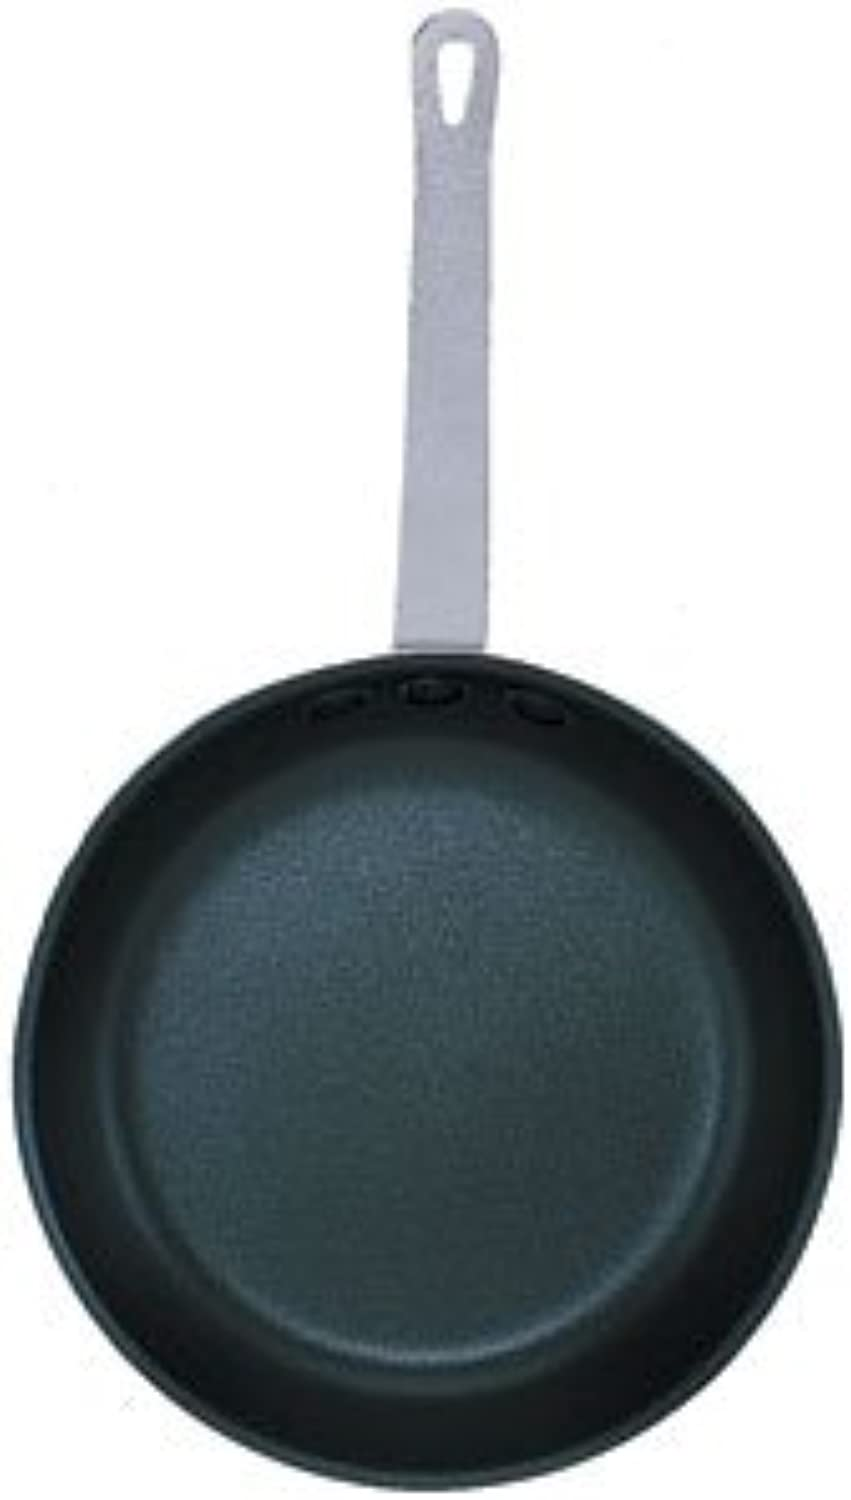 comprar barato 14 COMMERCIAL ALUMINUM NON-STICK FRY FRYING PAN PAN PAN - NSF by overstockedkitchen  varios tamaños